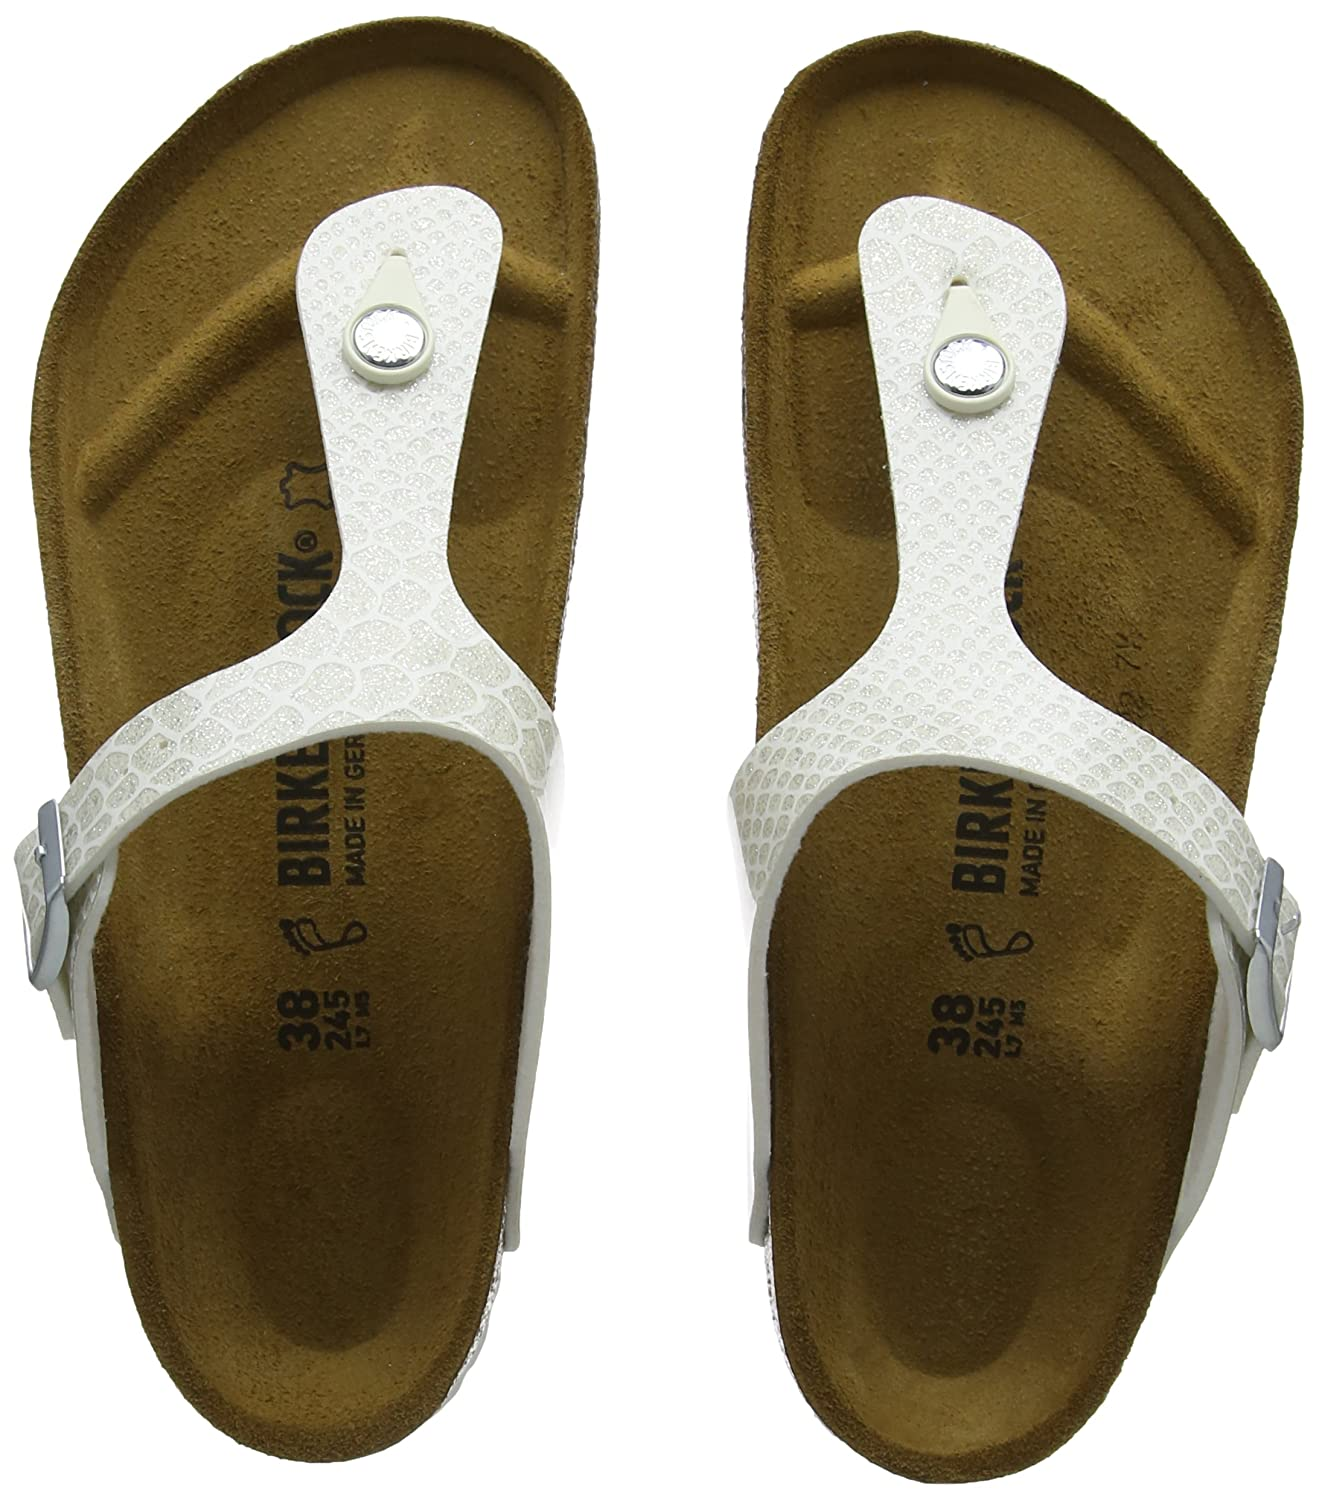 Birkenstock Gizeh Magic Snake Rose Birko-Flor Flat Sandals B074M9QNMF 40 M EU|White